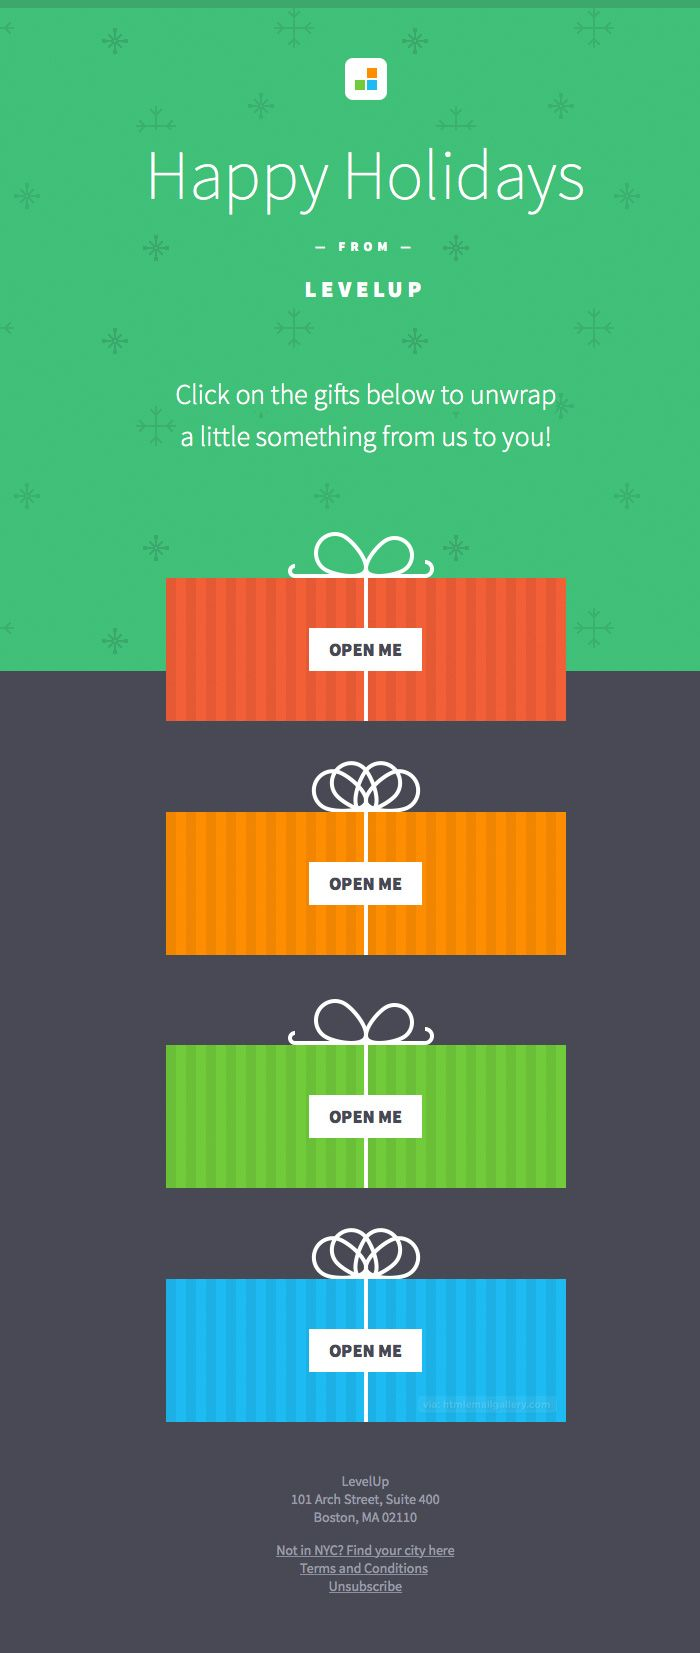 Levelup Happy Holidays Gift Email The Designer Pinterest Email